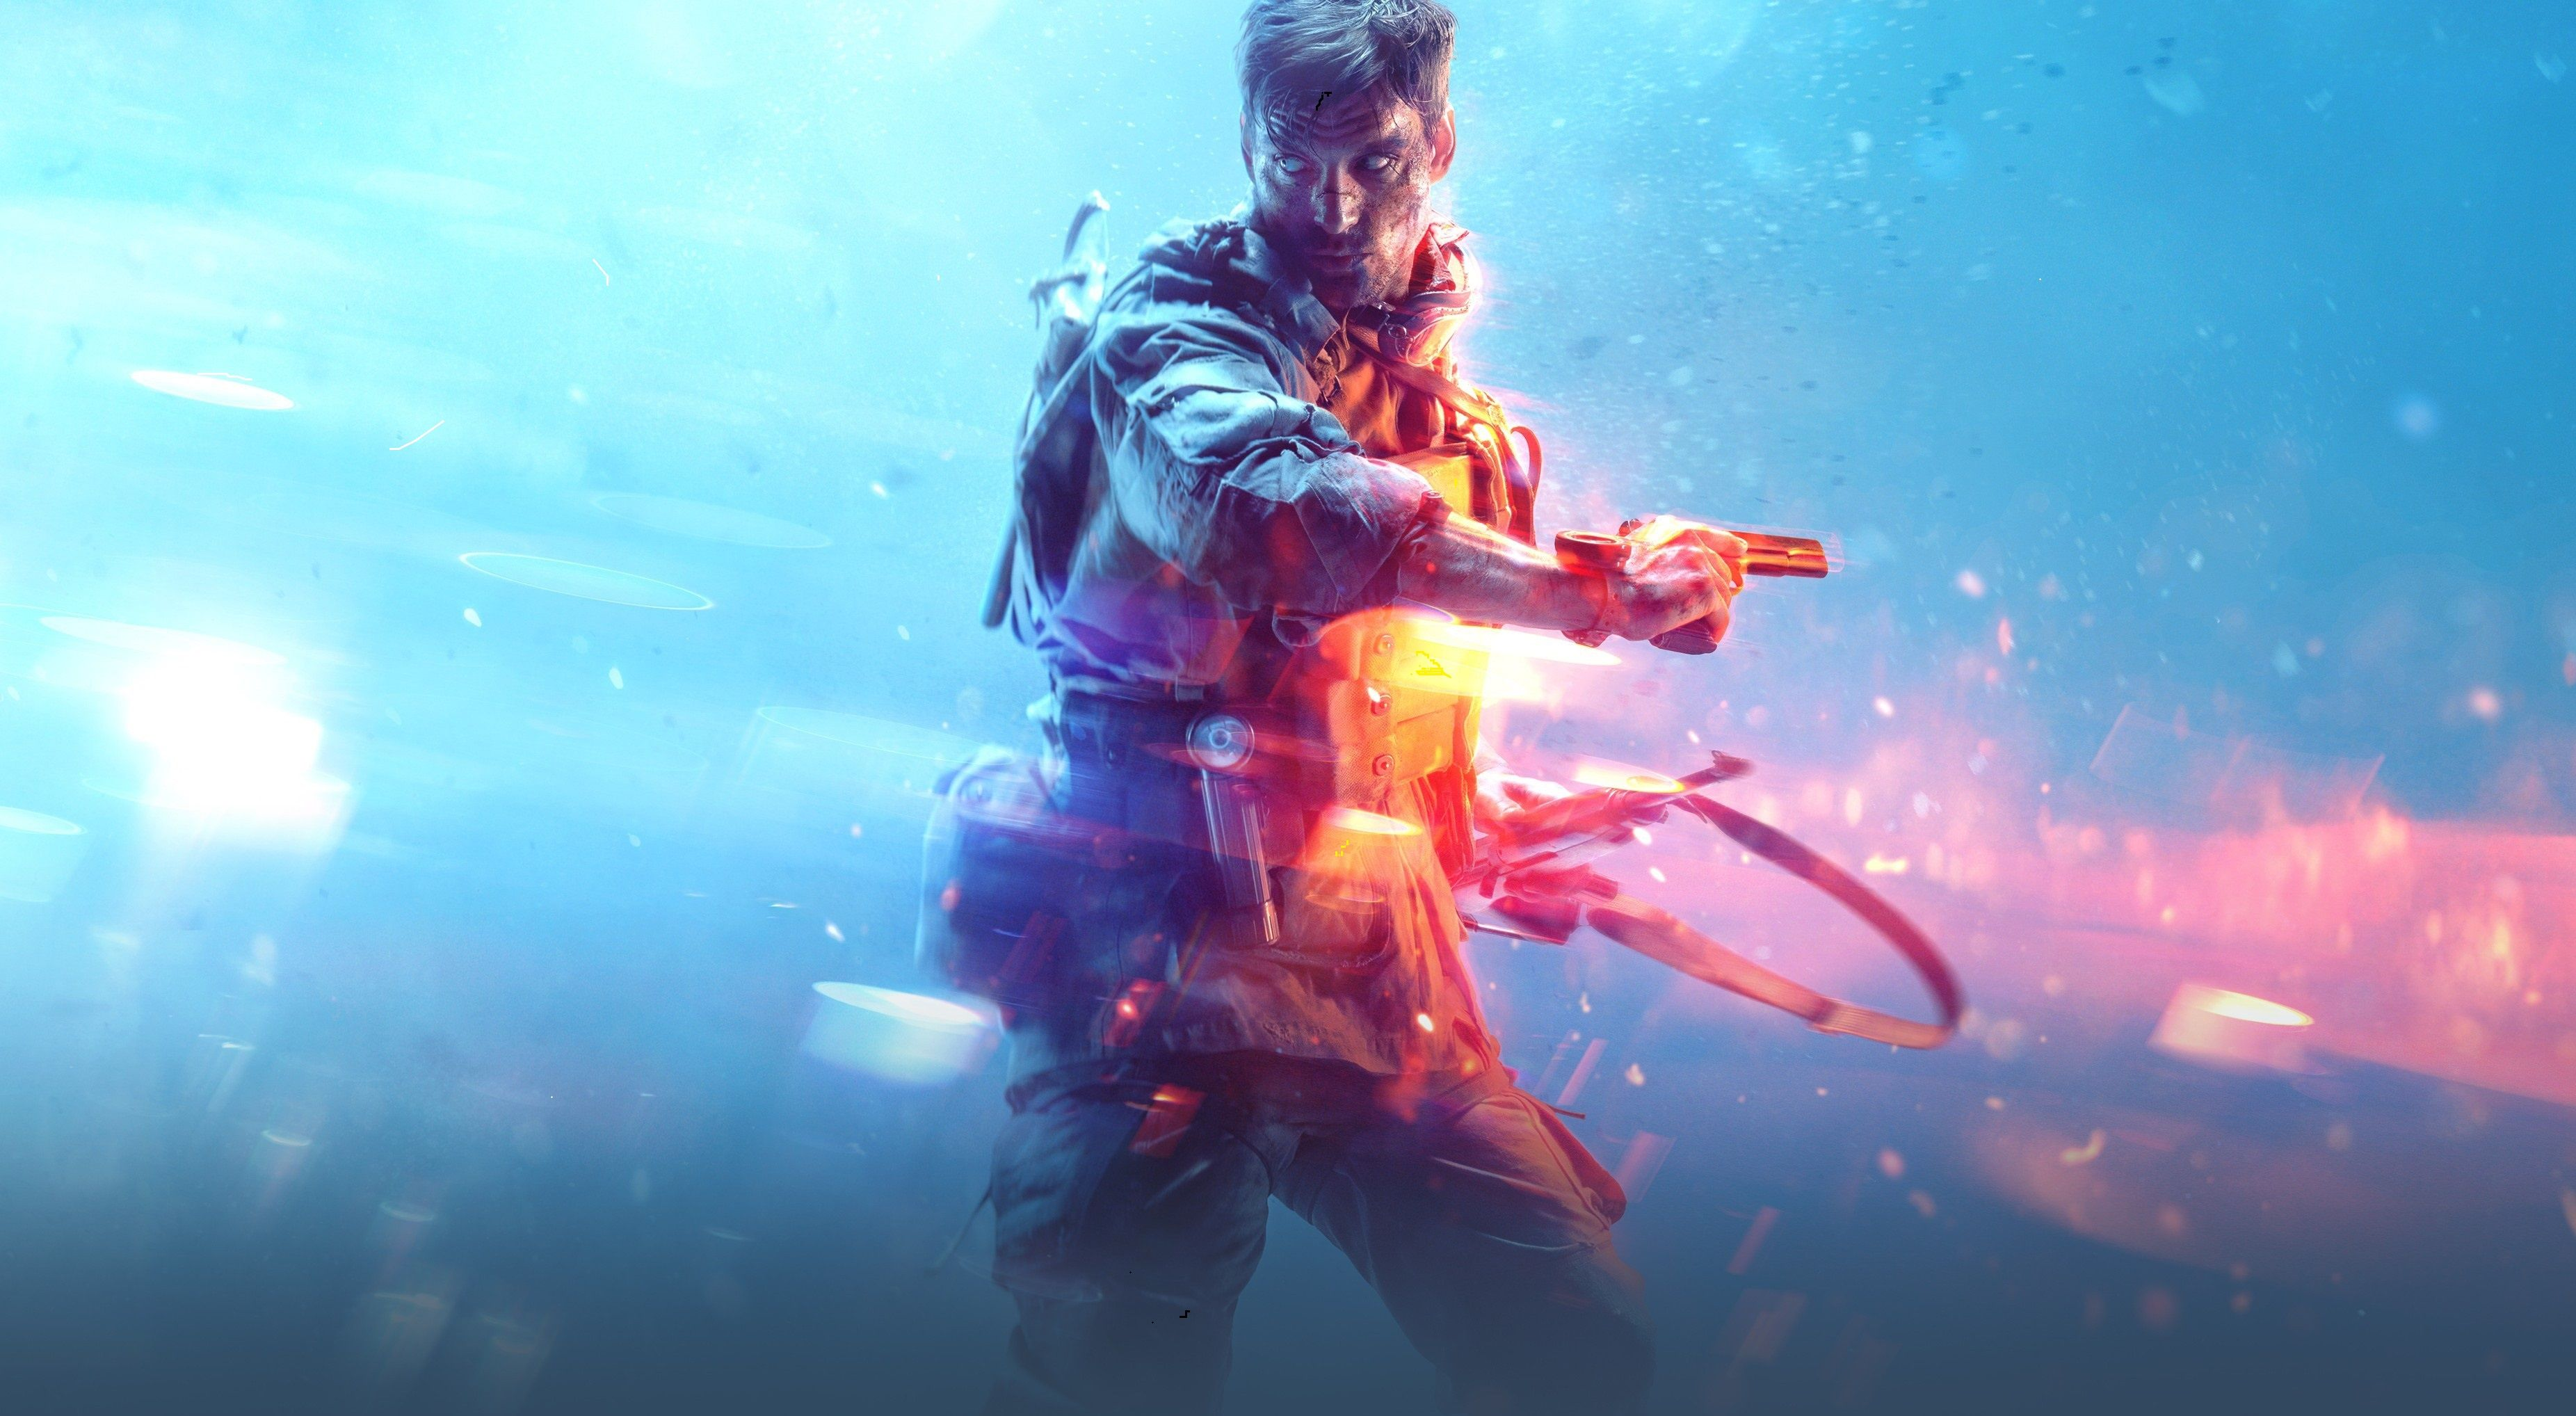 Battlefield 5 Game Wallpaper 4k Download Full Hd